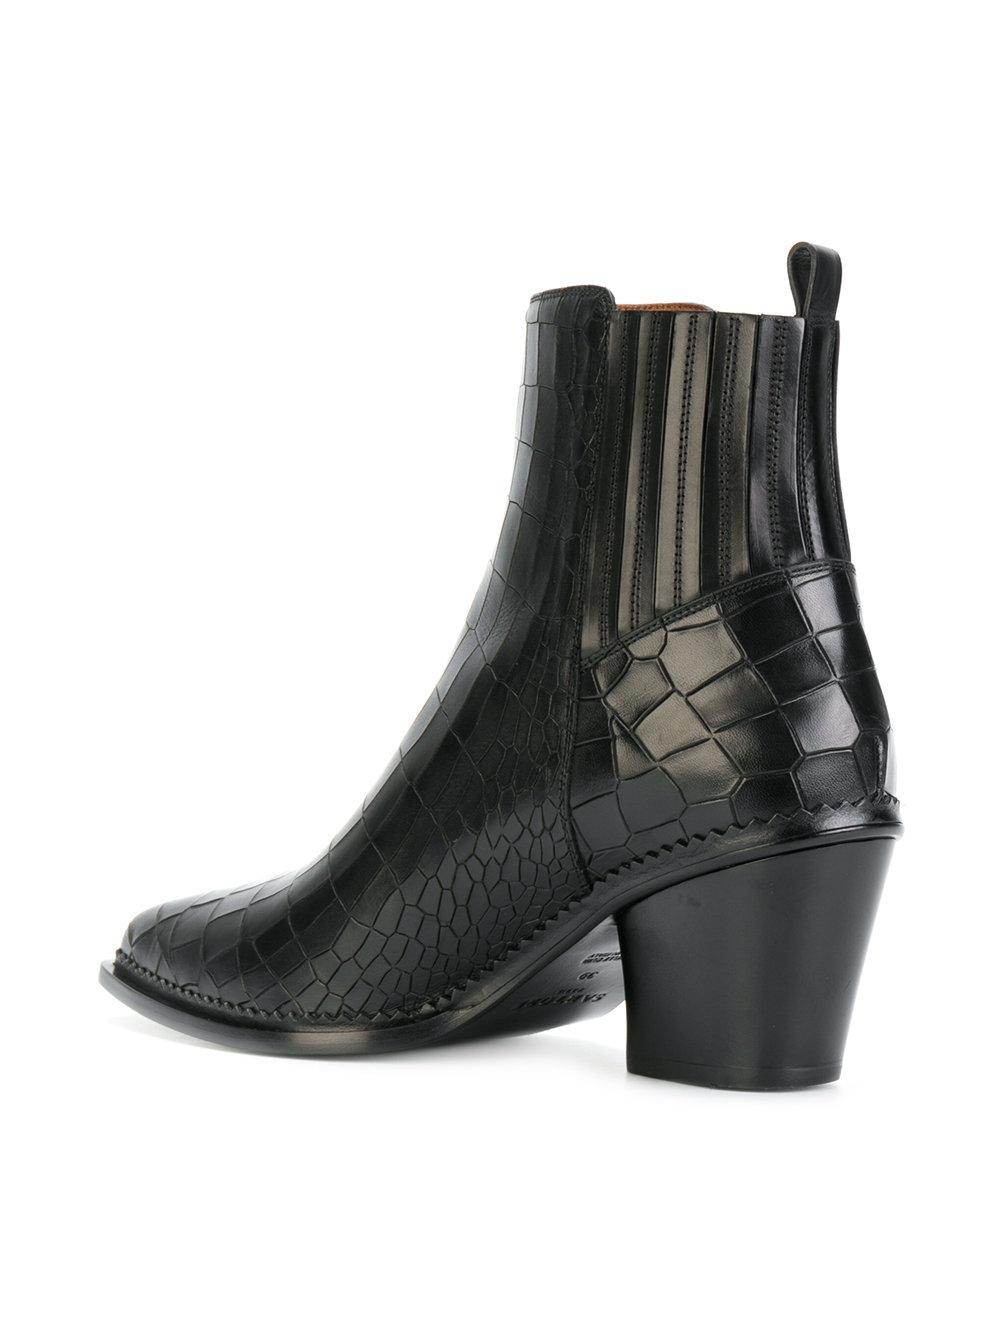 Sartore Leather Western Boots in Black